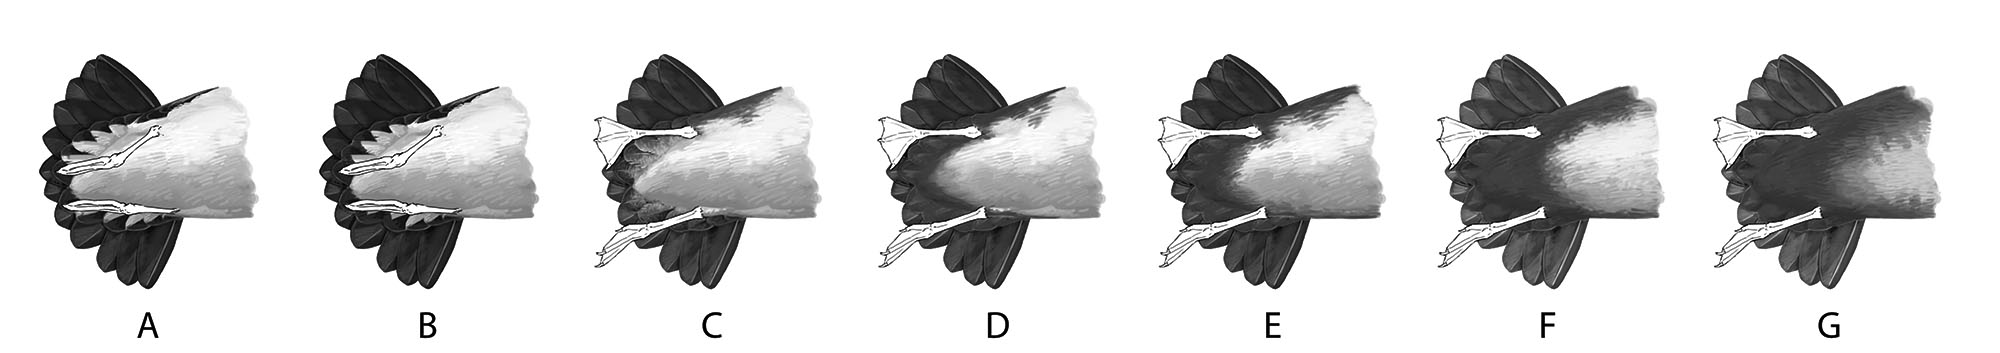 Manx Shearwater typically shows a clean undertail, with dark restricted to the outer web of the outer row of undertail-coverts (A). Some fine dark markings may occasionally be found on the inner web of these feathers; one individual (B) was seen with solid dark markings on the inner webs - see text. The palest Yelkouan Shearwaters (c. 20%) can appear similar (C), though the dark/light contrast is less marked. More than 50% of Yelkouans show completely brown undertail-coverts, although the dark does not extend to the belly (D). In around 20% of Yelkouans, dark extends onto the sides of the lower belly (E); compare that with a pale Balearic Shearwater (F), in which brown usually extends right across the lower belly. Typical Balearics show a completely brown lower belly, which merges gradually into the pale central belly (G). Artwork by Martí Franch.